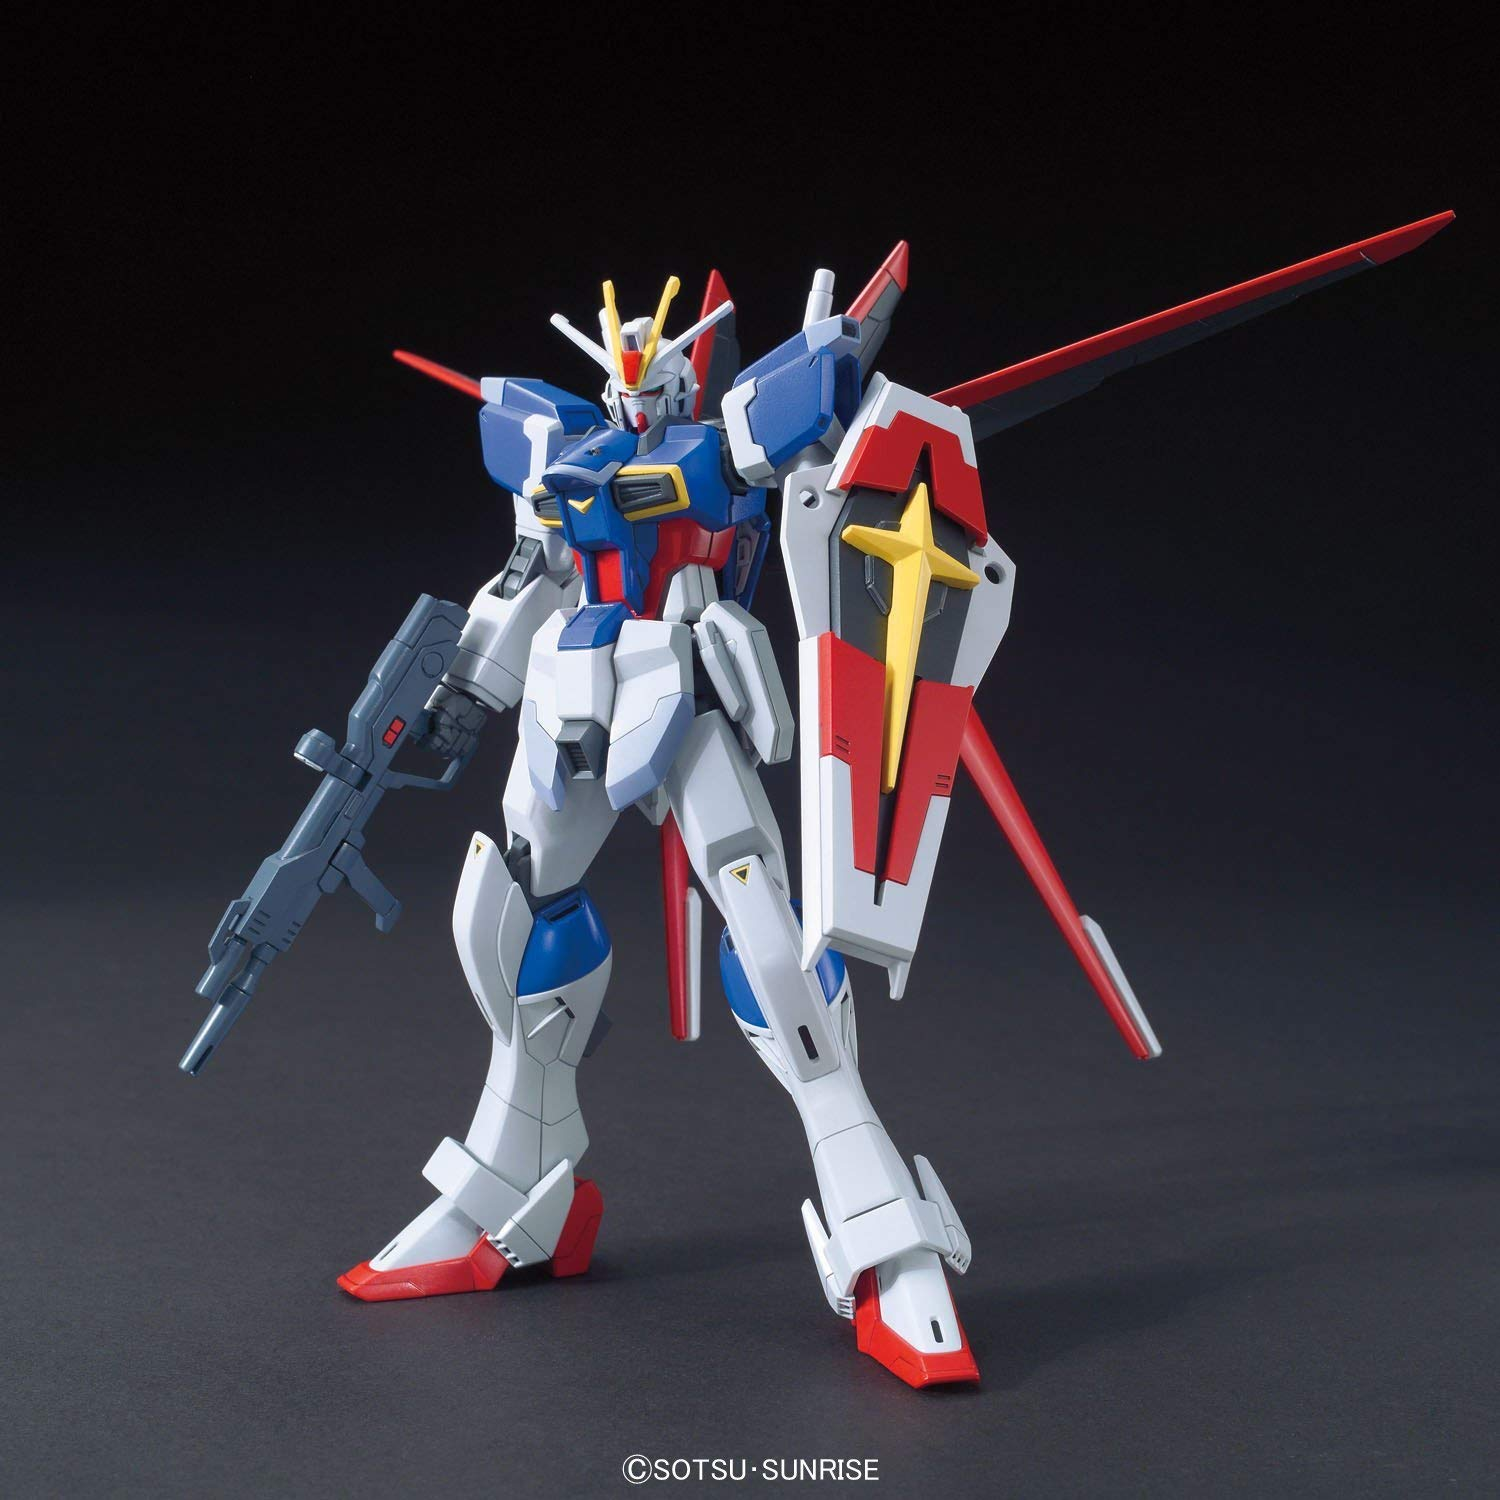 HGCE 198 REVIVE 1/144 ZGMF-X56S/α フォースインパルスガンダム [Force Impulse Gundam] 0206326 5059241 4573102592415 4549660063261